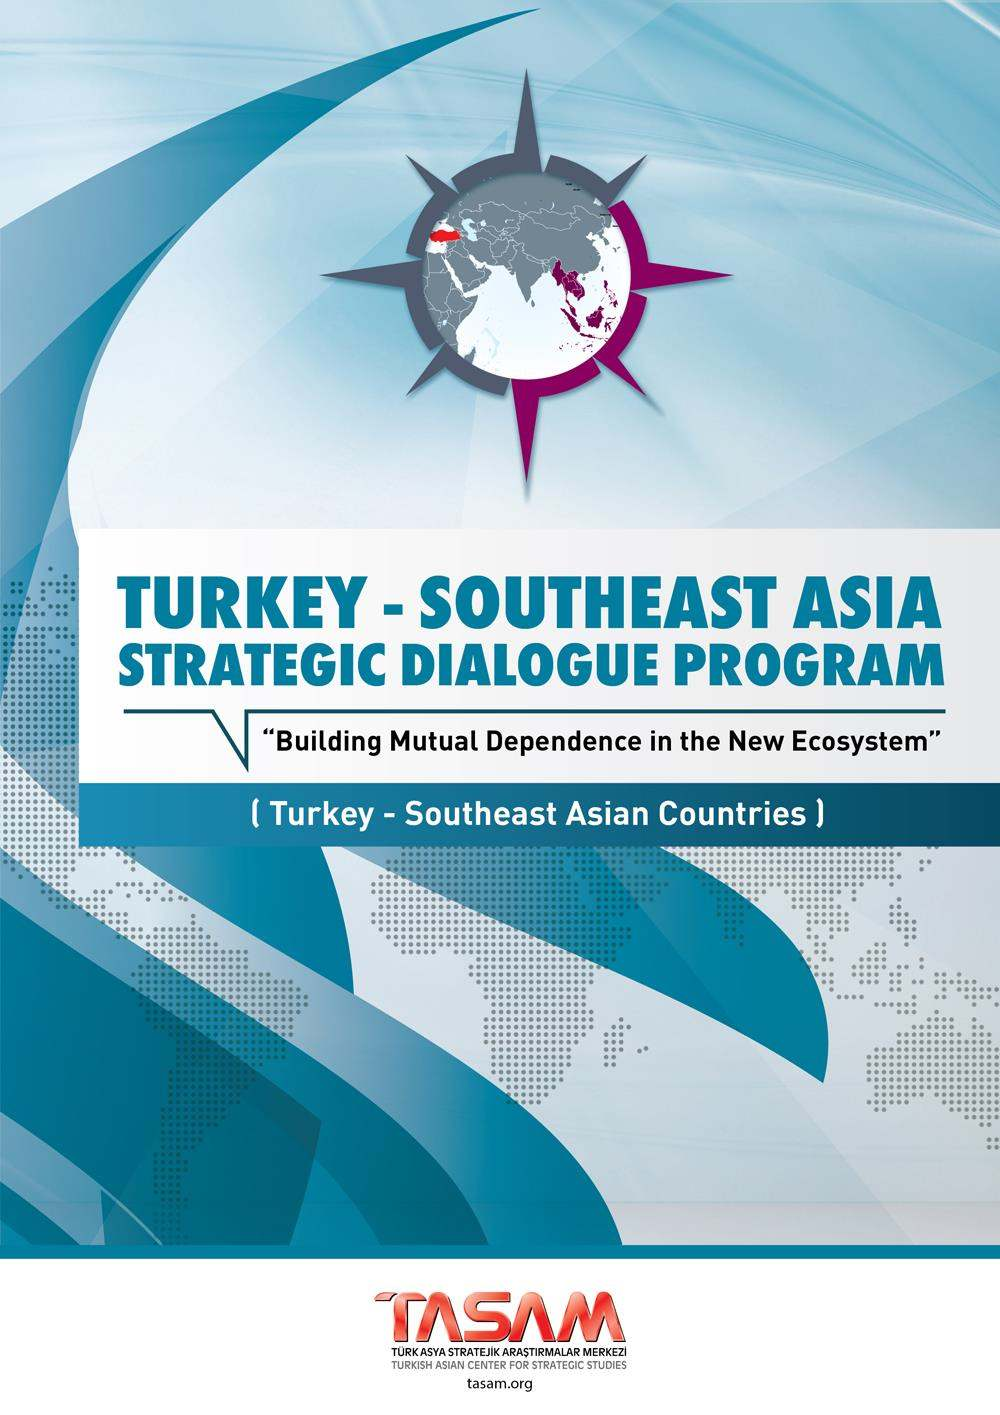 Turkey - Southeast Asia Strategic Dialogue Program